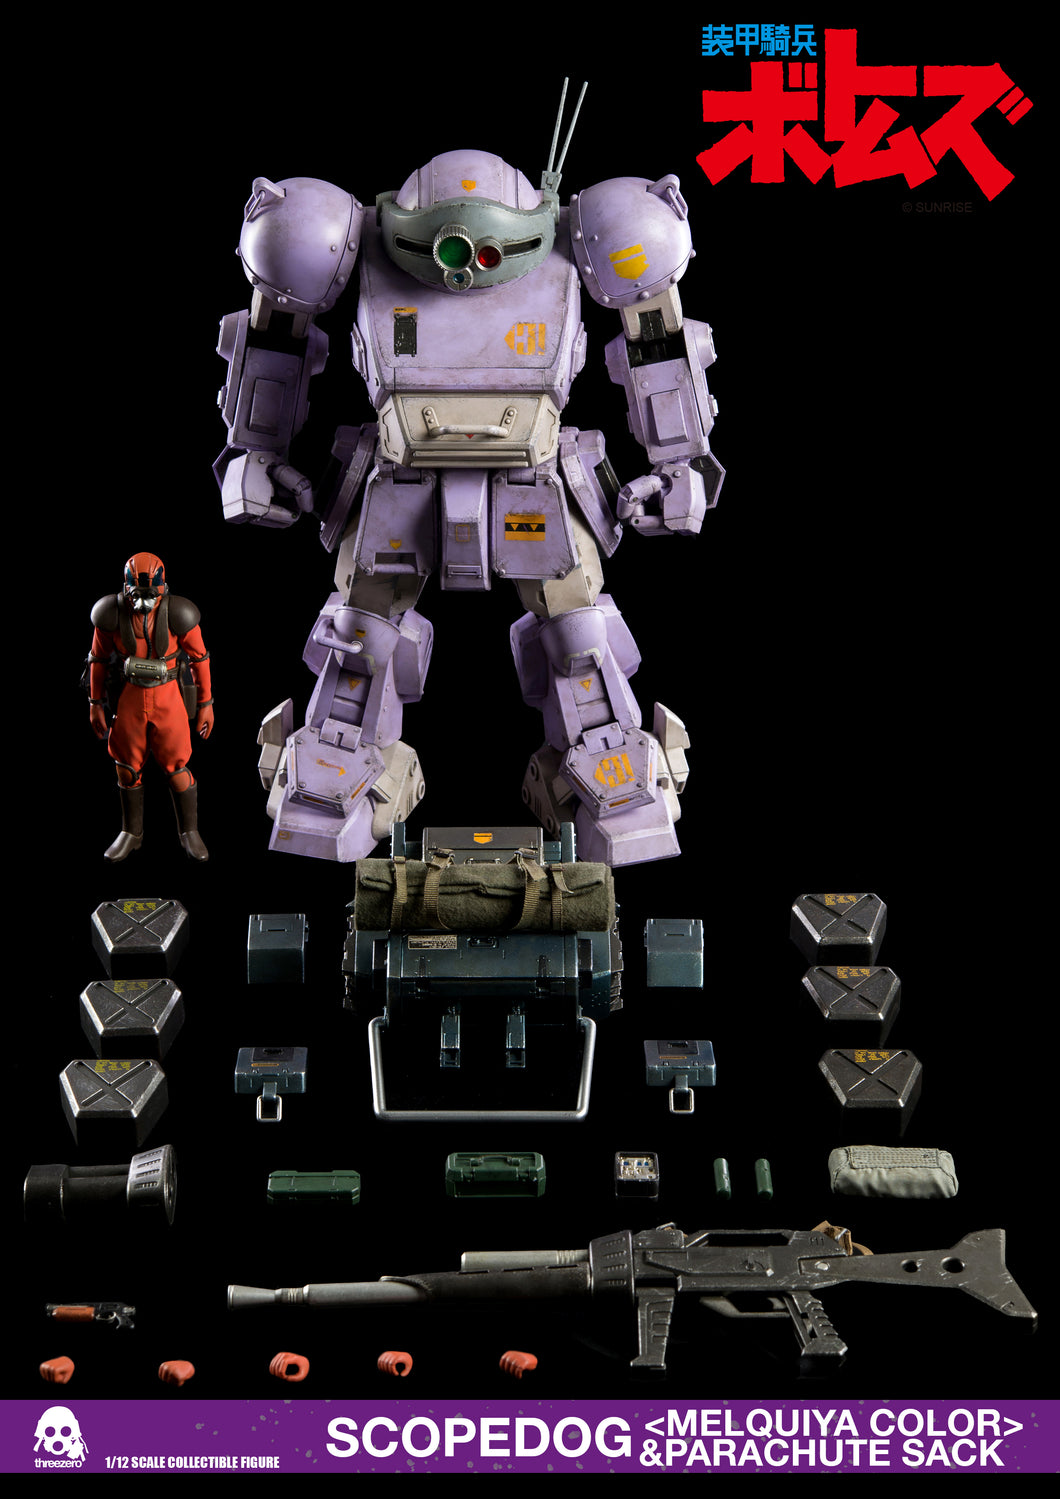 **PRE-ORDER**  -Armored Trooper Votoms Scopedog <Melquiya color> & Parachute Sack (STEALTH VERSION) - Threezero